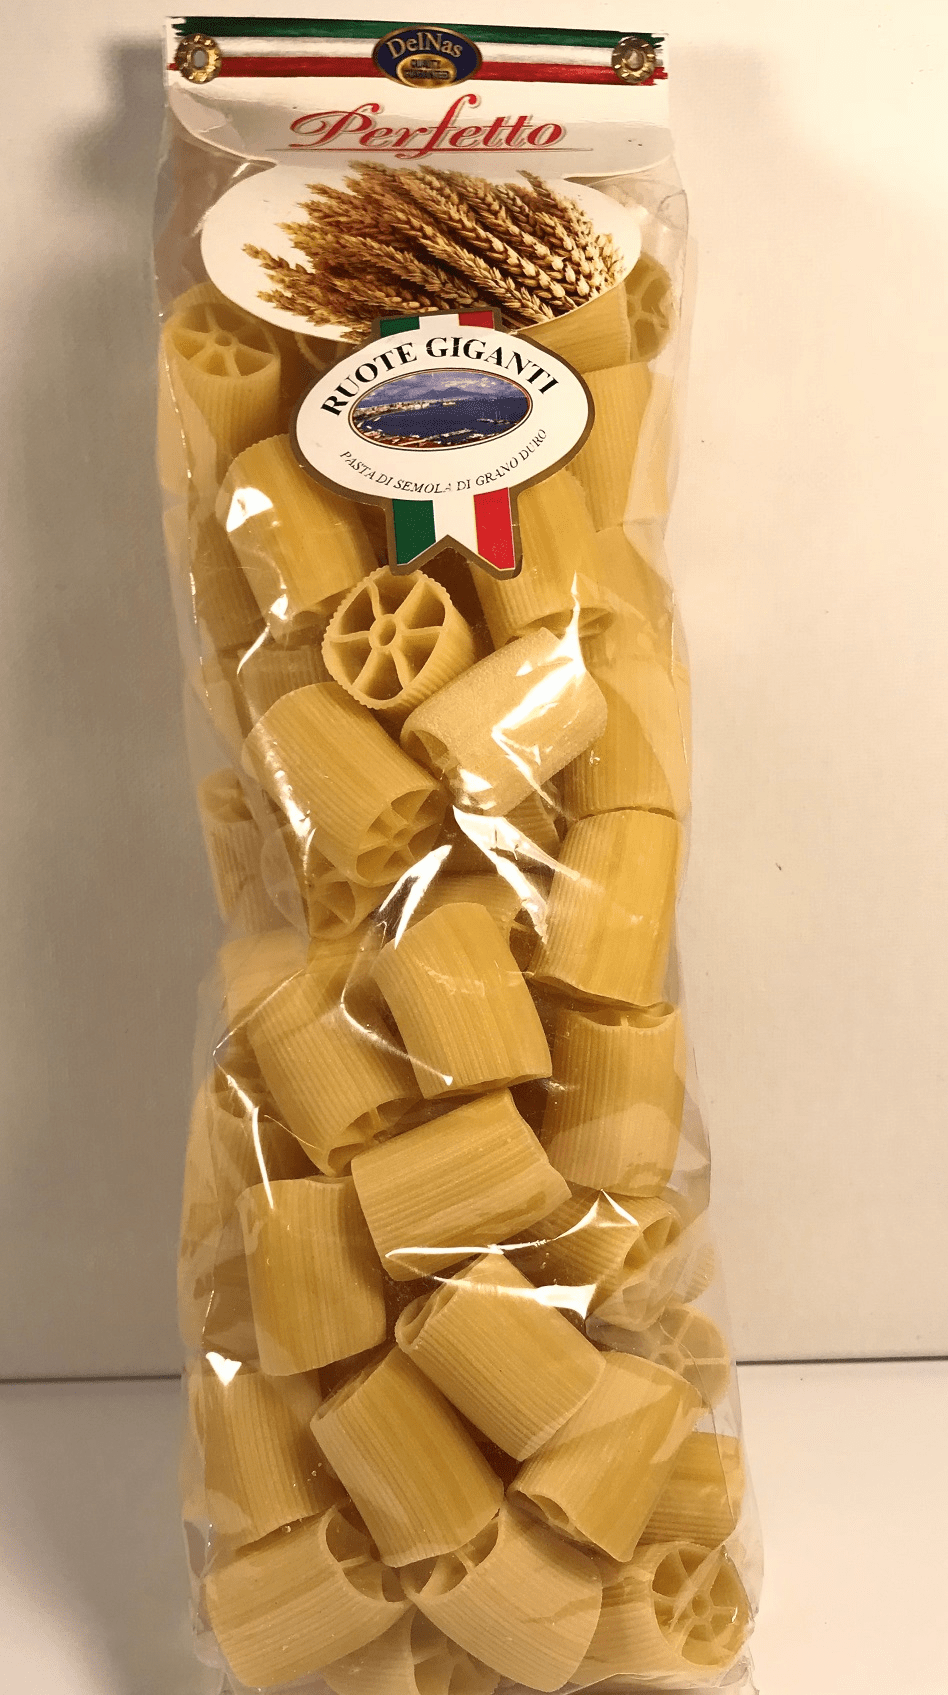 """Perfetto Pasta """"Bronze Die Extrusion"""" Imported from Italy - 1.1 LBS Bag"""